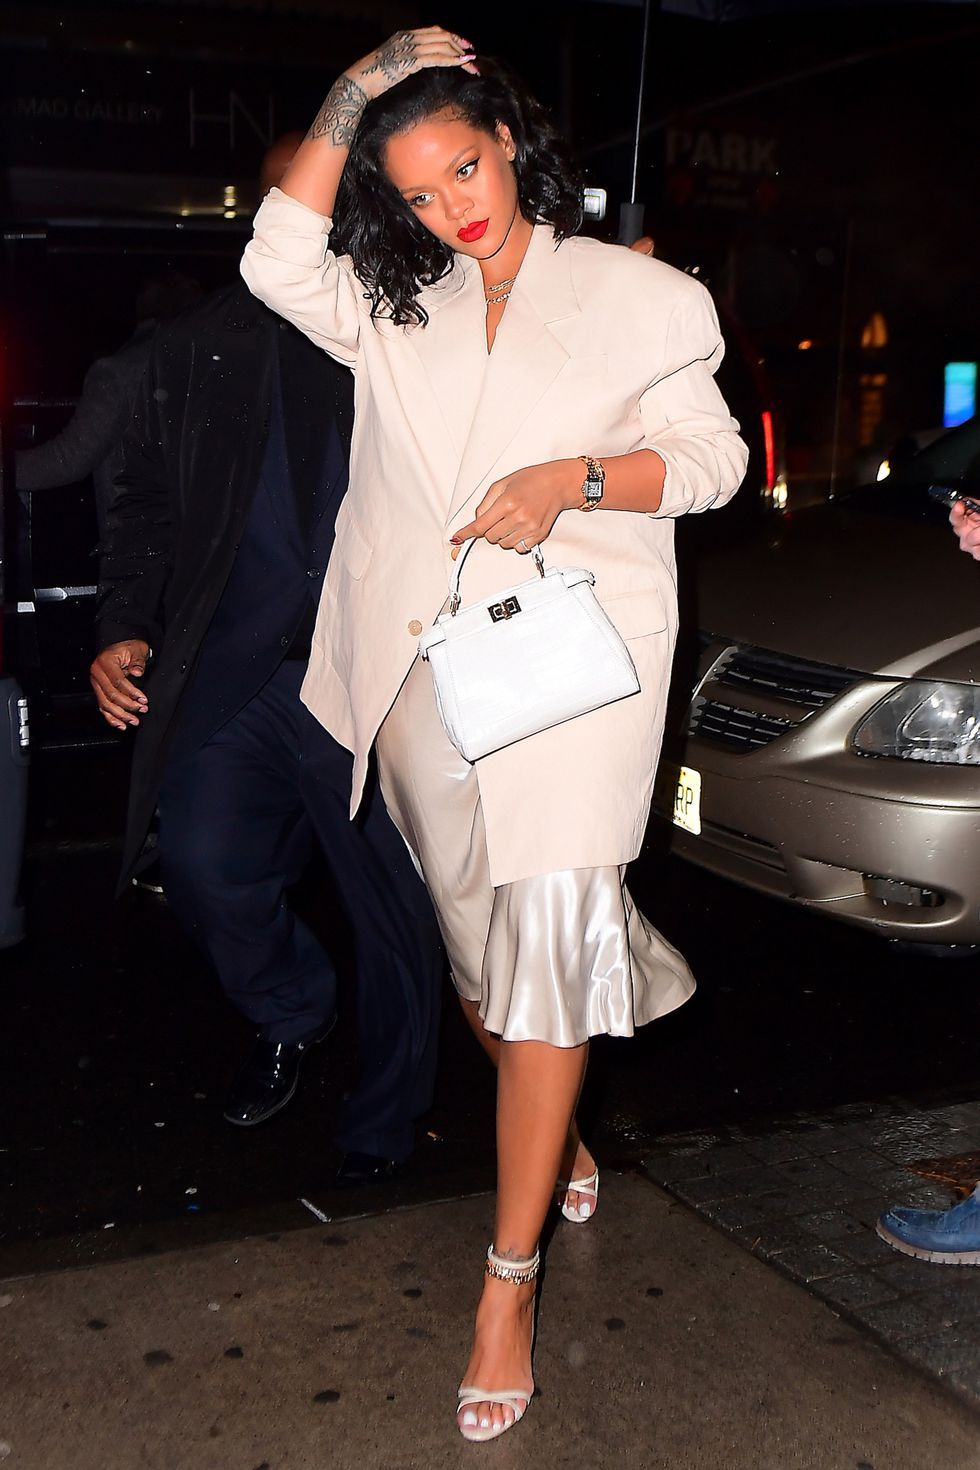 Rihanna Stuns In Satin Dress While Out To Dinner In NYC